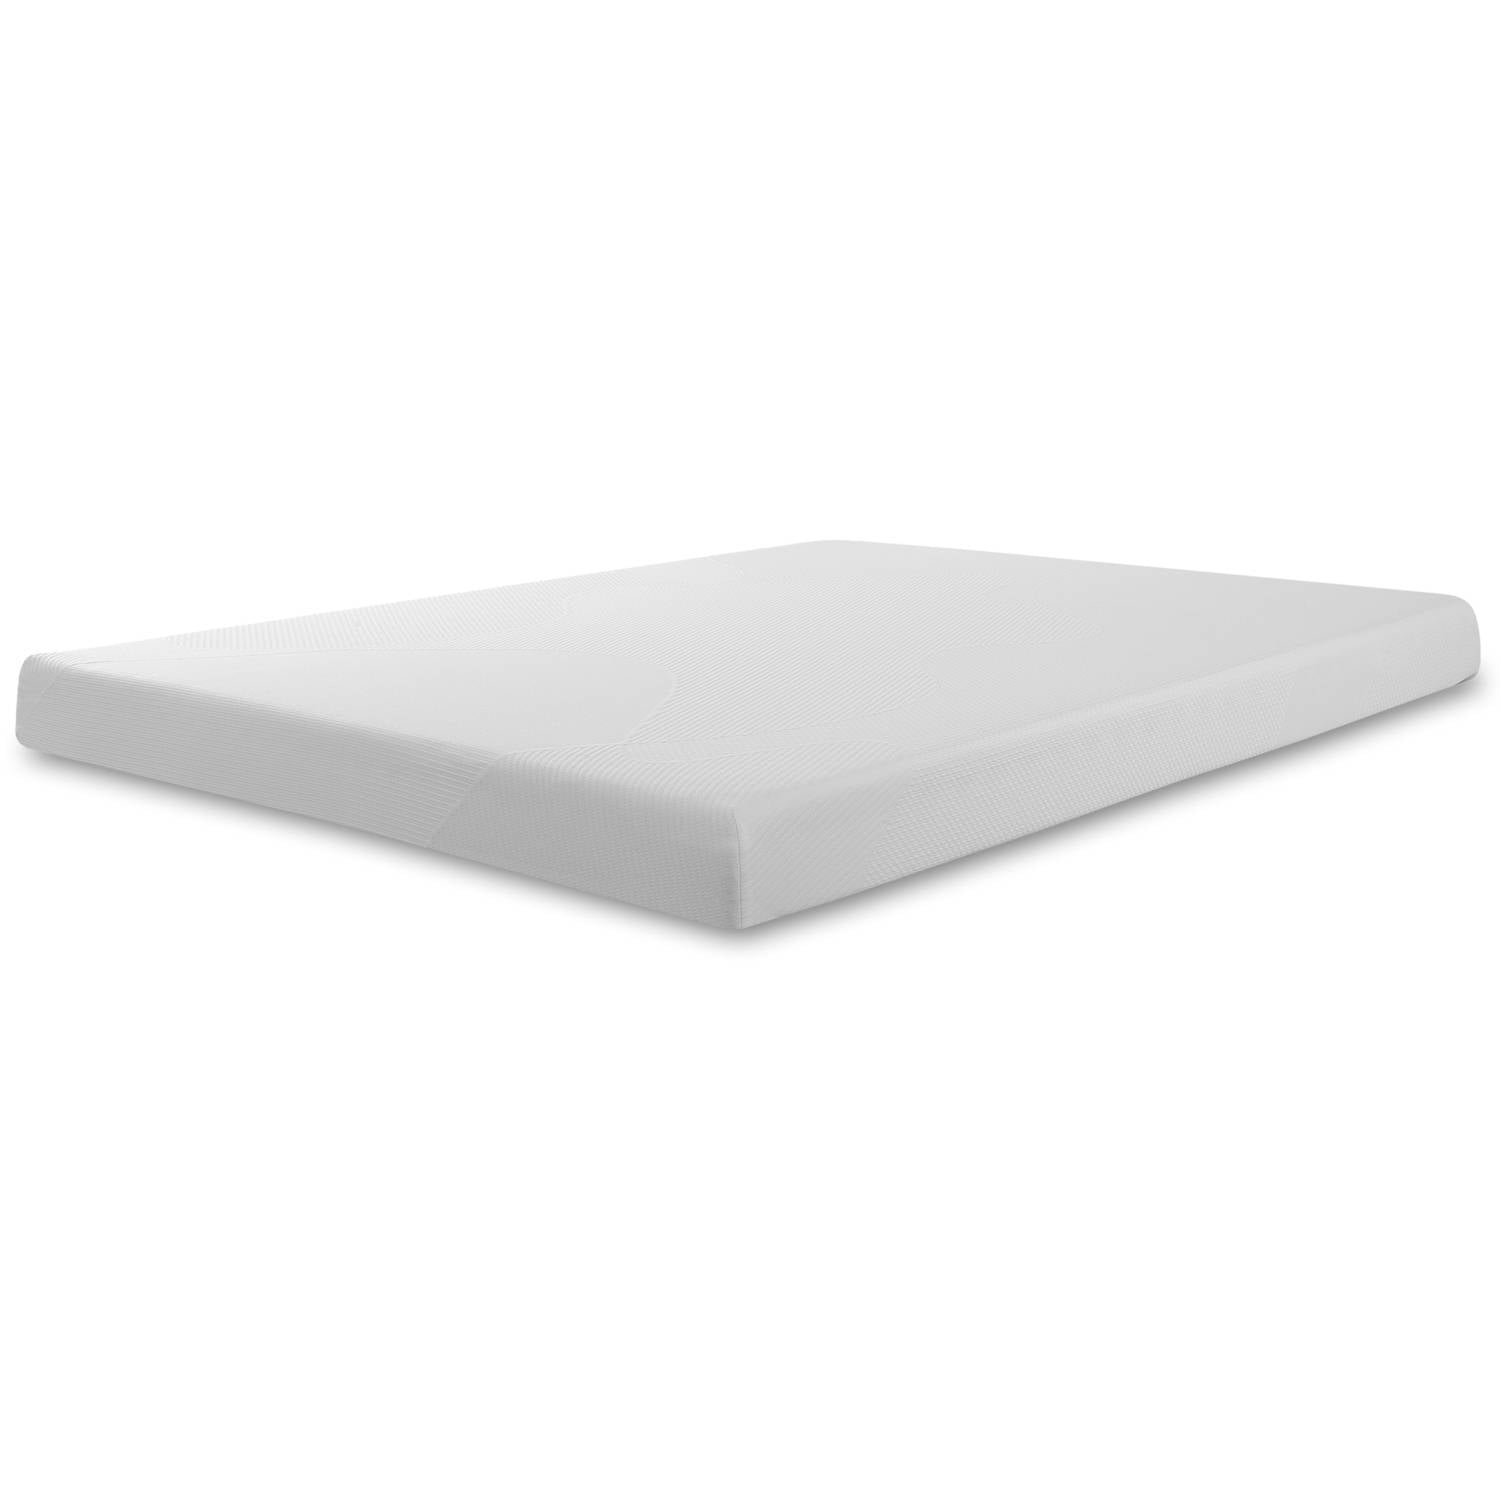 spa sensations 6 memory foam mattress multiple sizes walmartcom - Best Foam Mattress